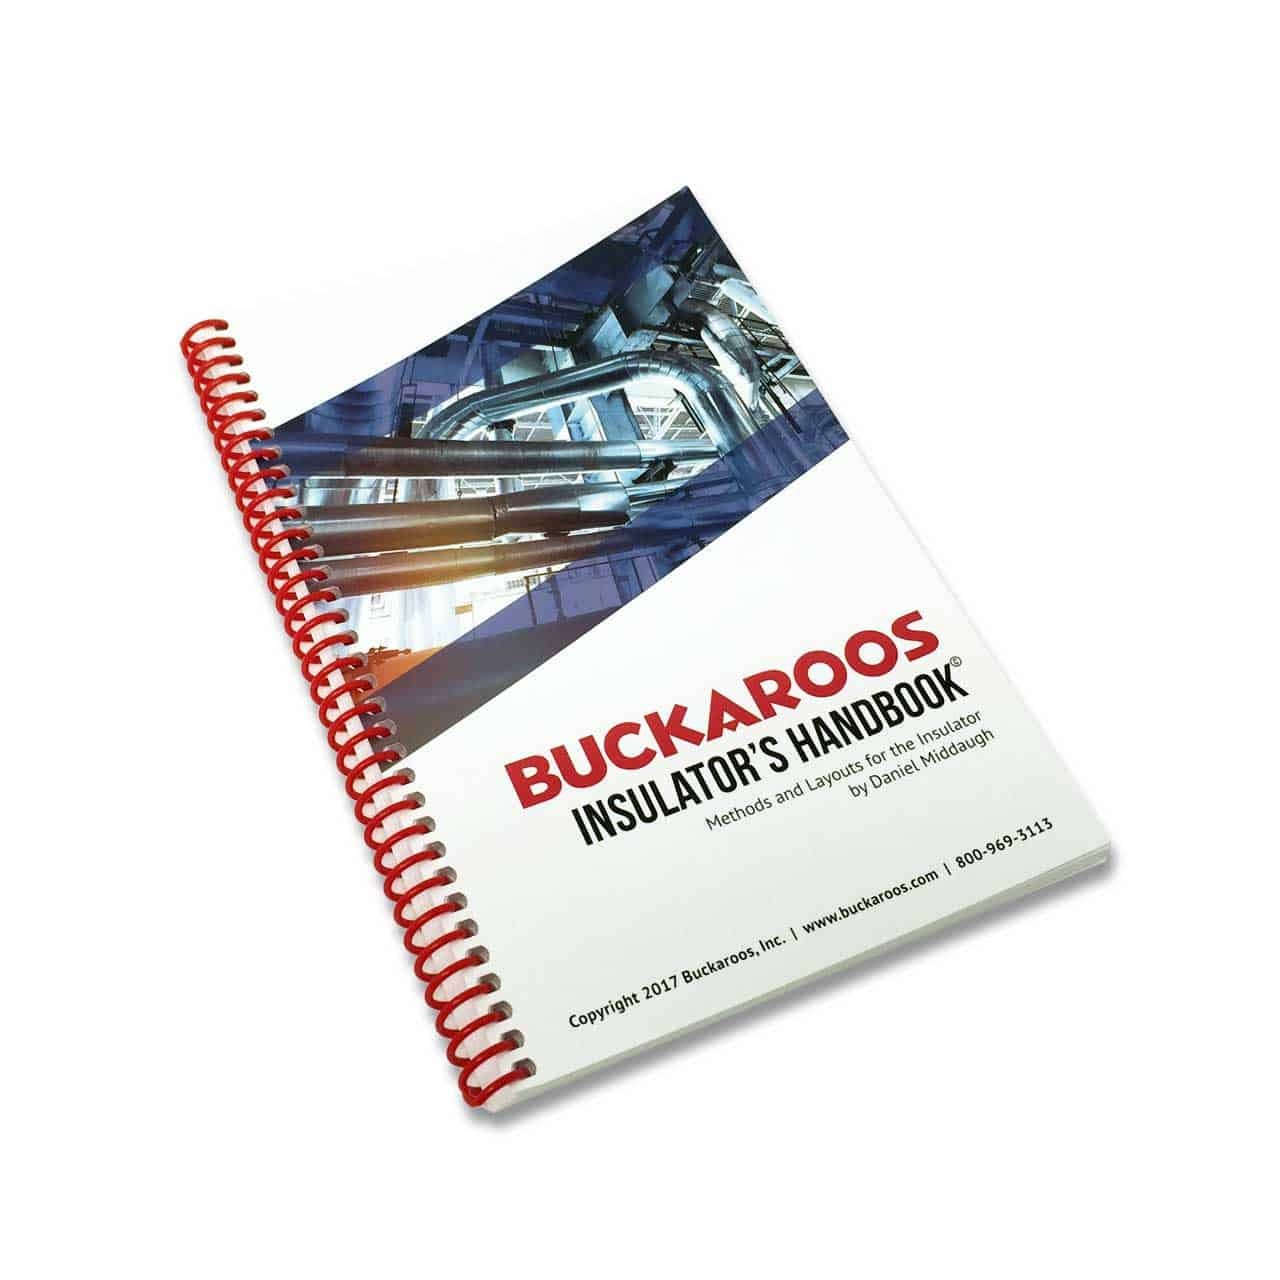 Insulator Handbook with Essential Layouts and Guidelines